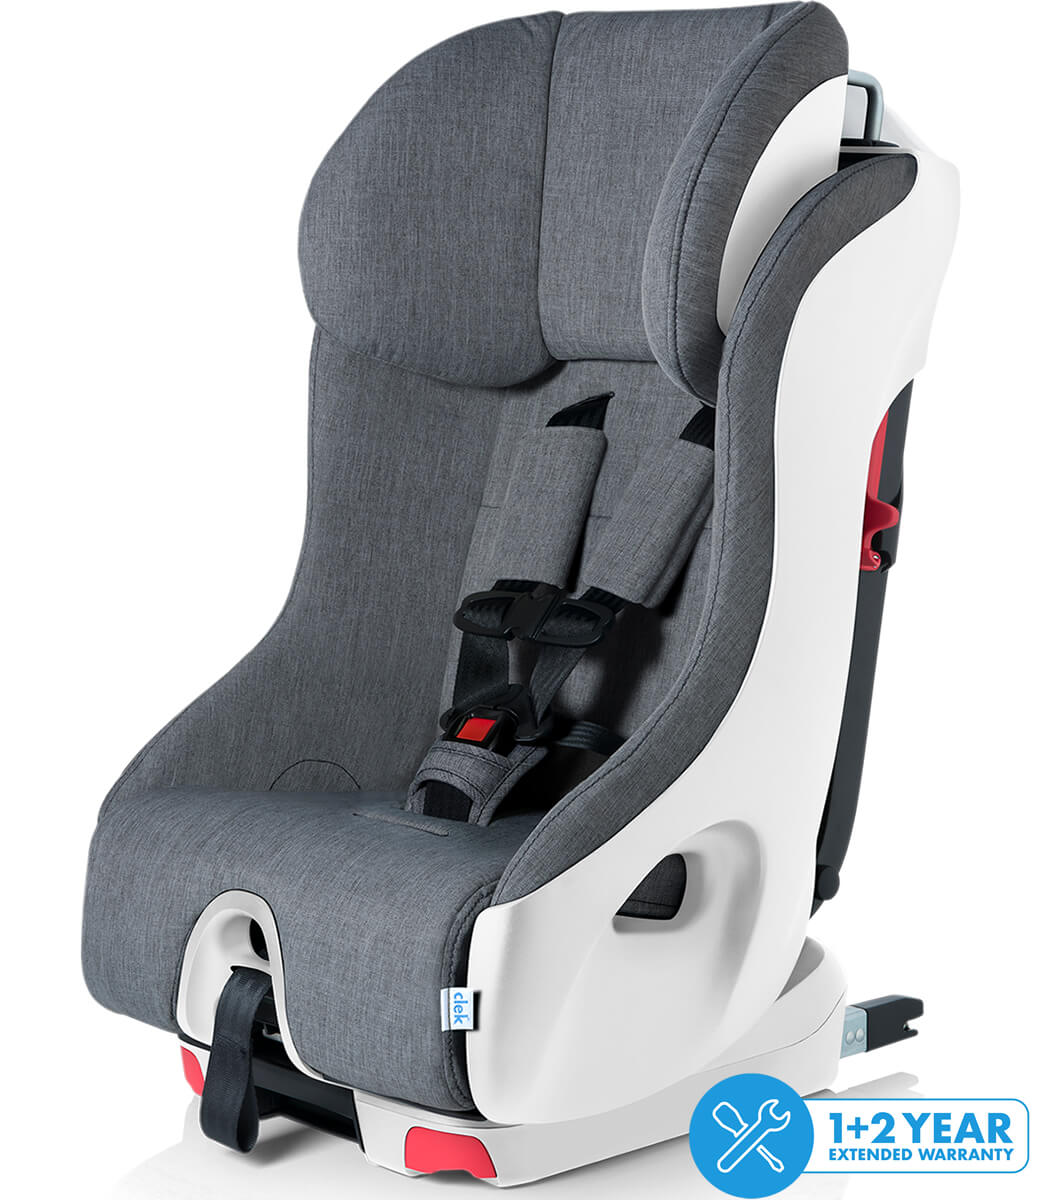 Clek Foonf 2018 Convertible Car Seat